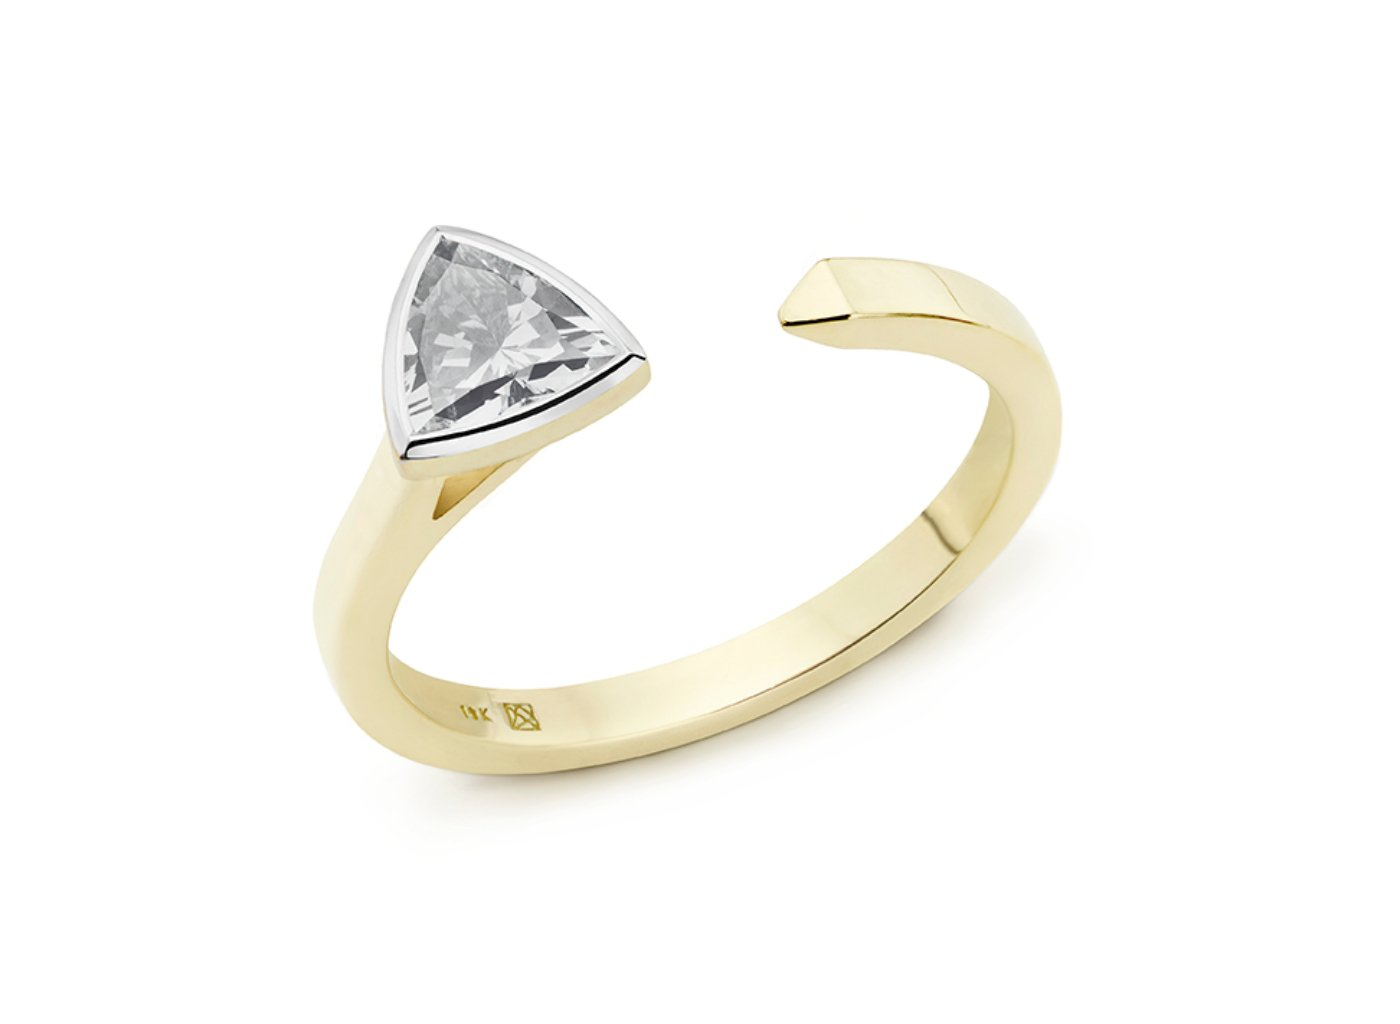 Side view of Trillion open top 3/8 carat ring with white diamond